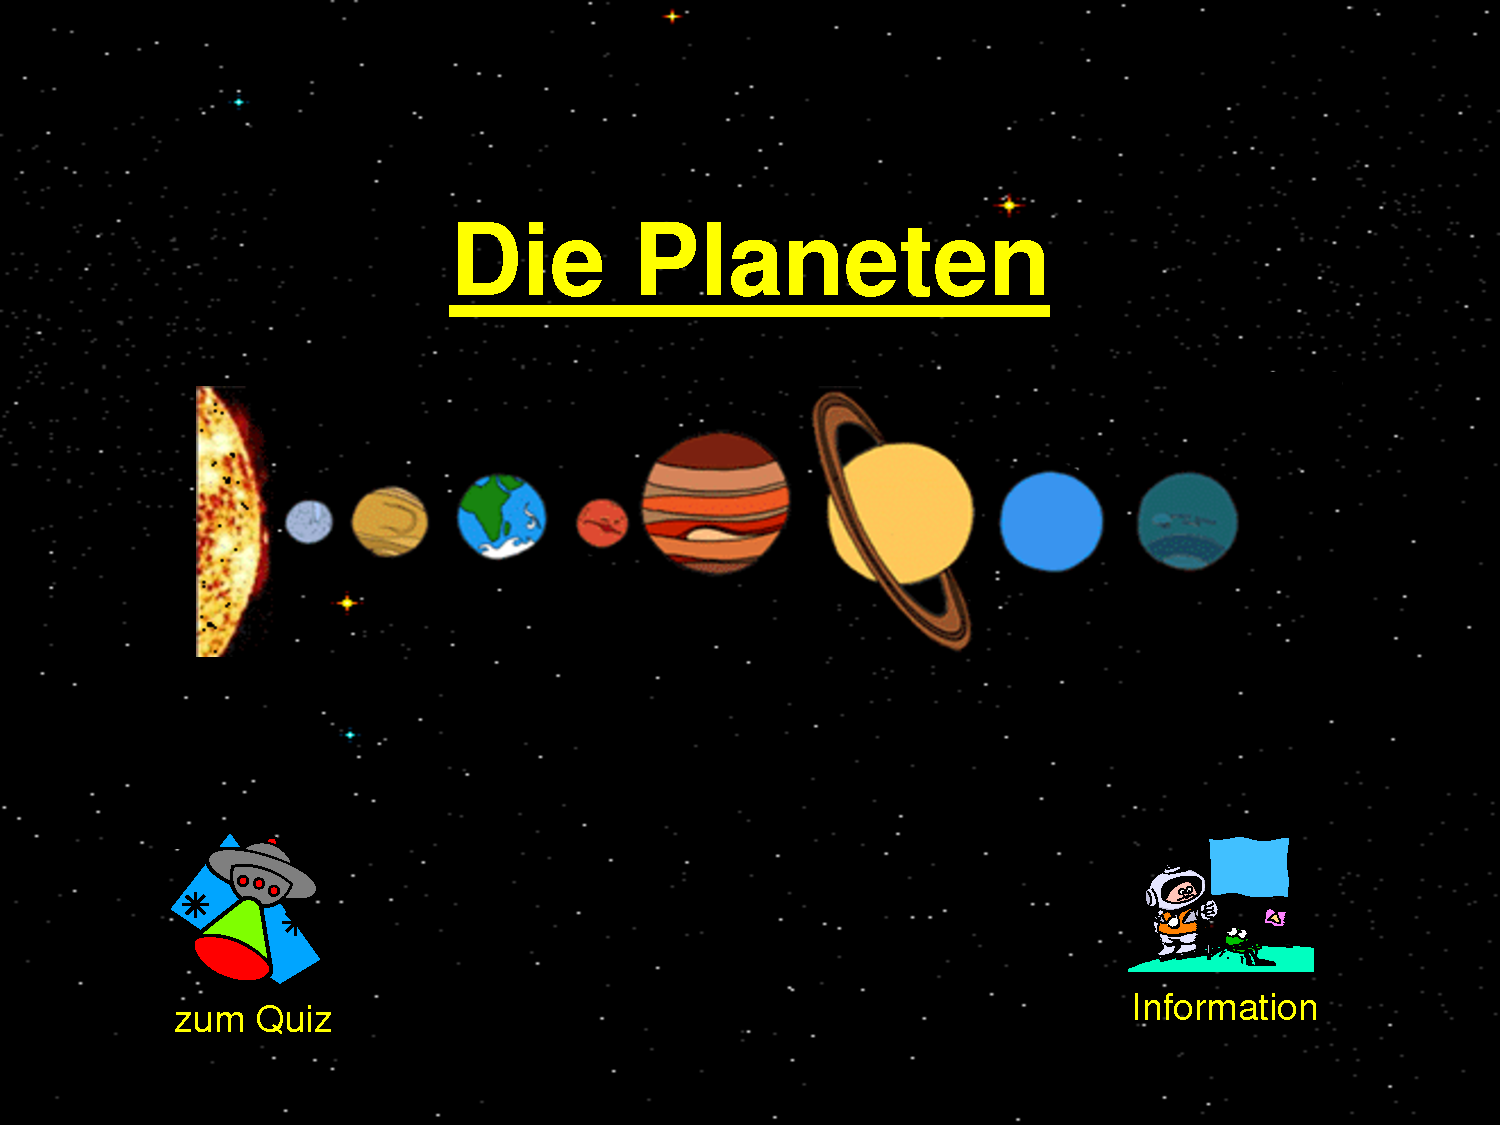 astronomy coursework Introduction to astronomy provides a quantitative introduction to the physics of the solar system, stars, the interstellar medium, the galaxy, and the universe, as.